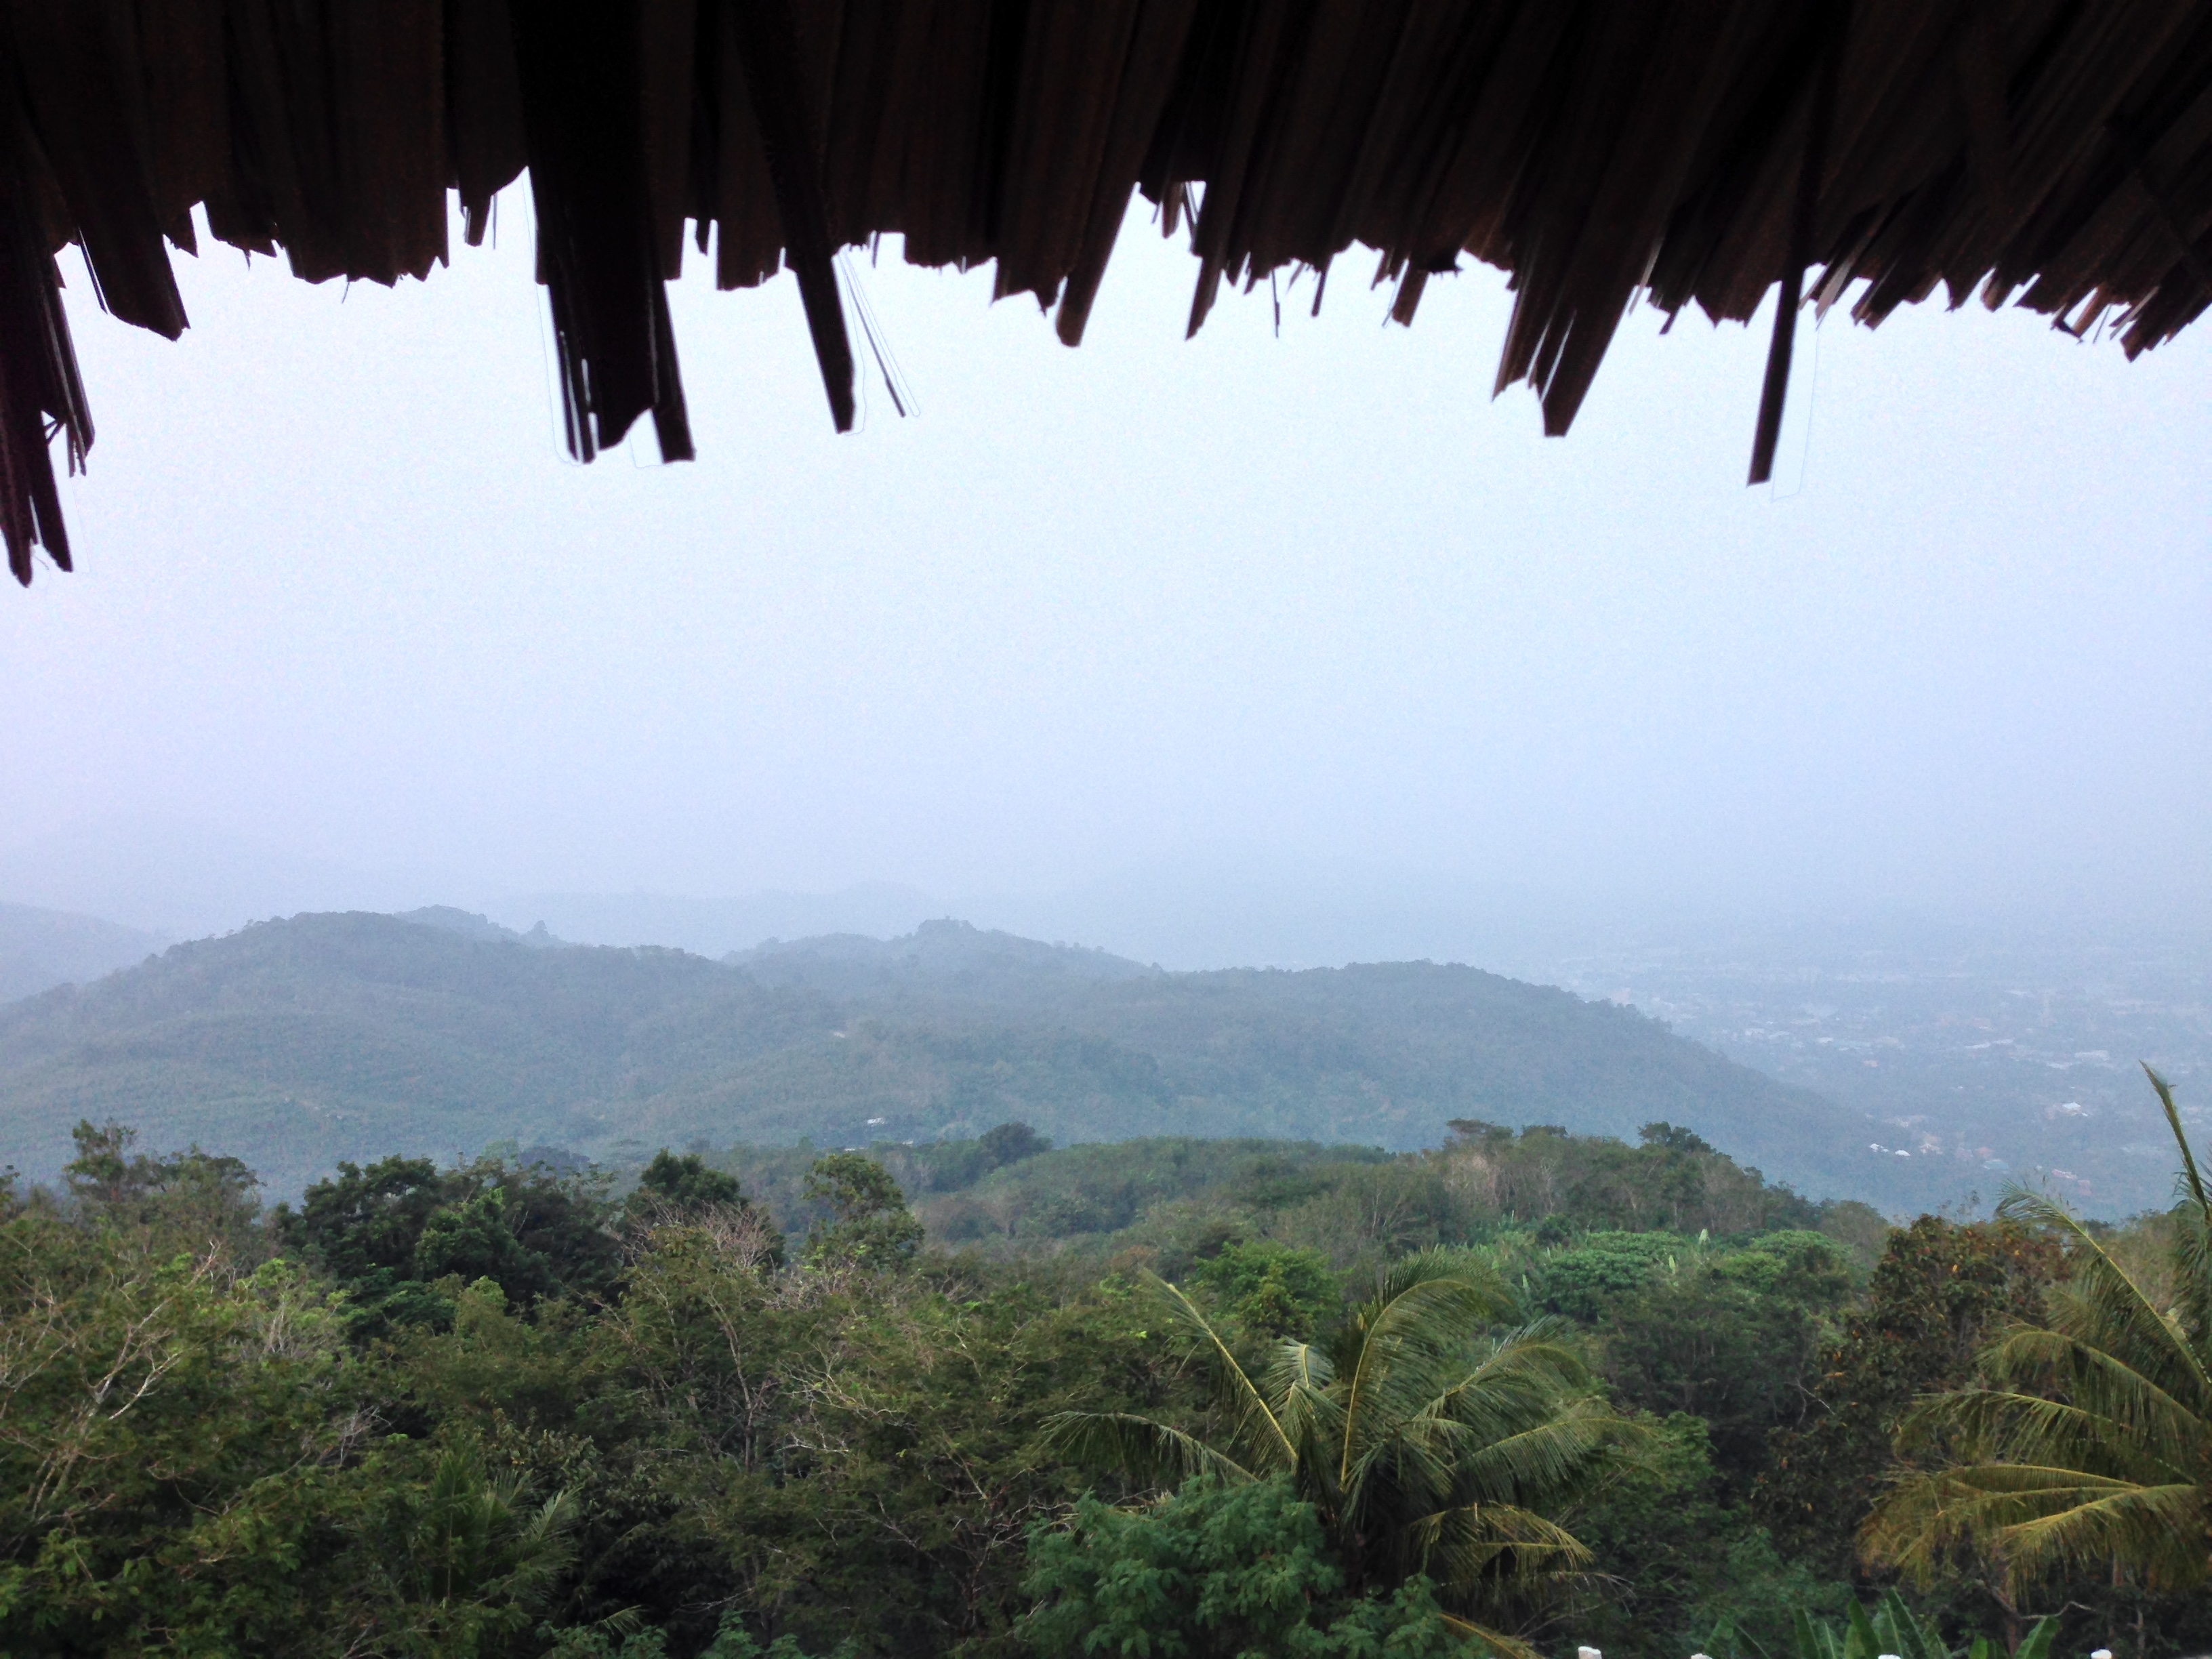 View of the hills from a vantage point near the entrance of the Big Buddha structure.